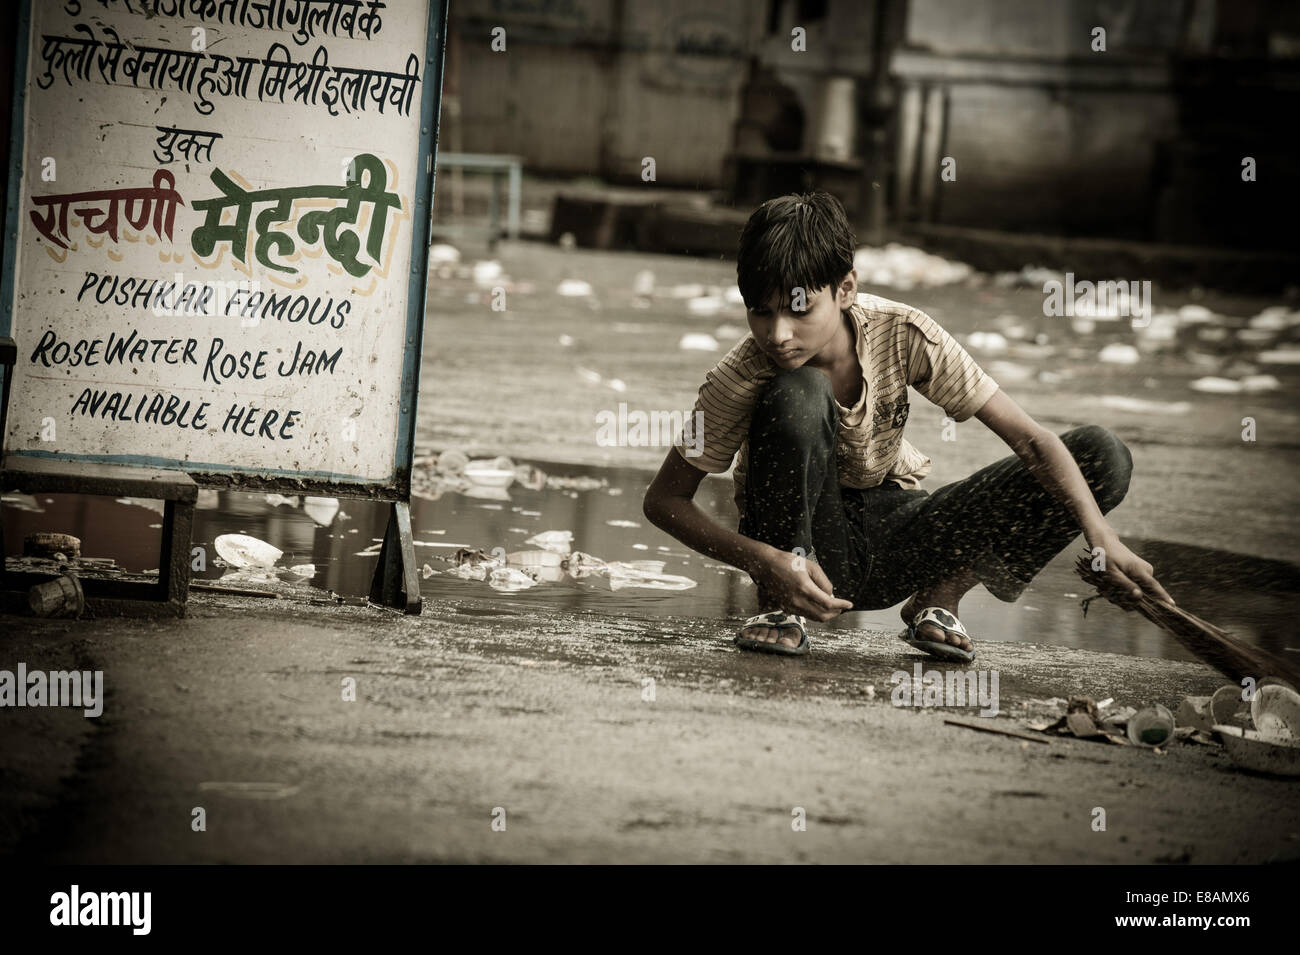 Rural Life in Rajasthan, young boy cleaning the street - Stock Image